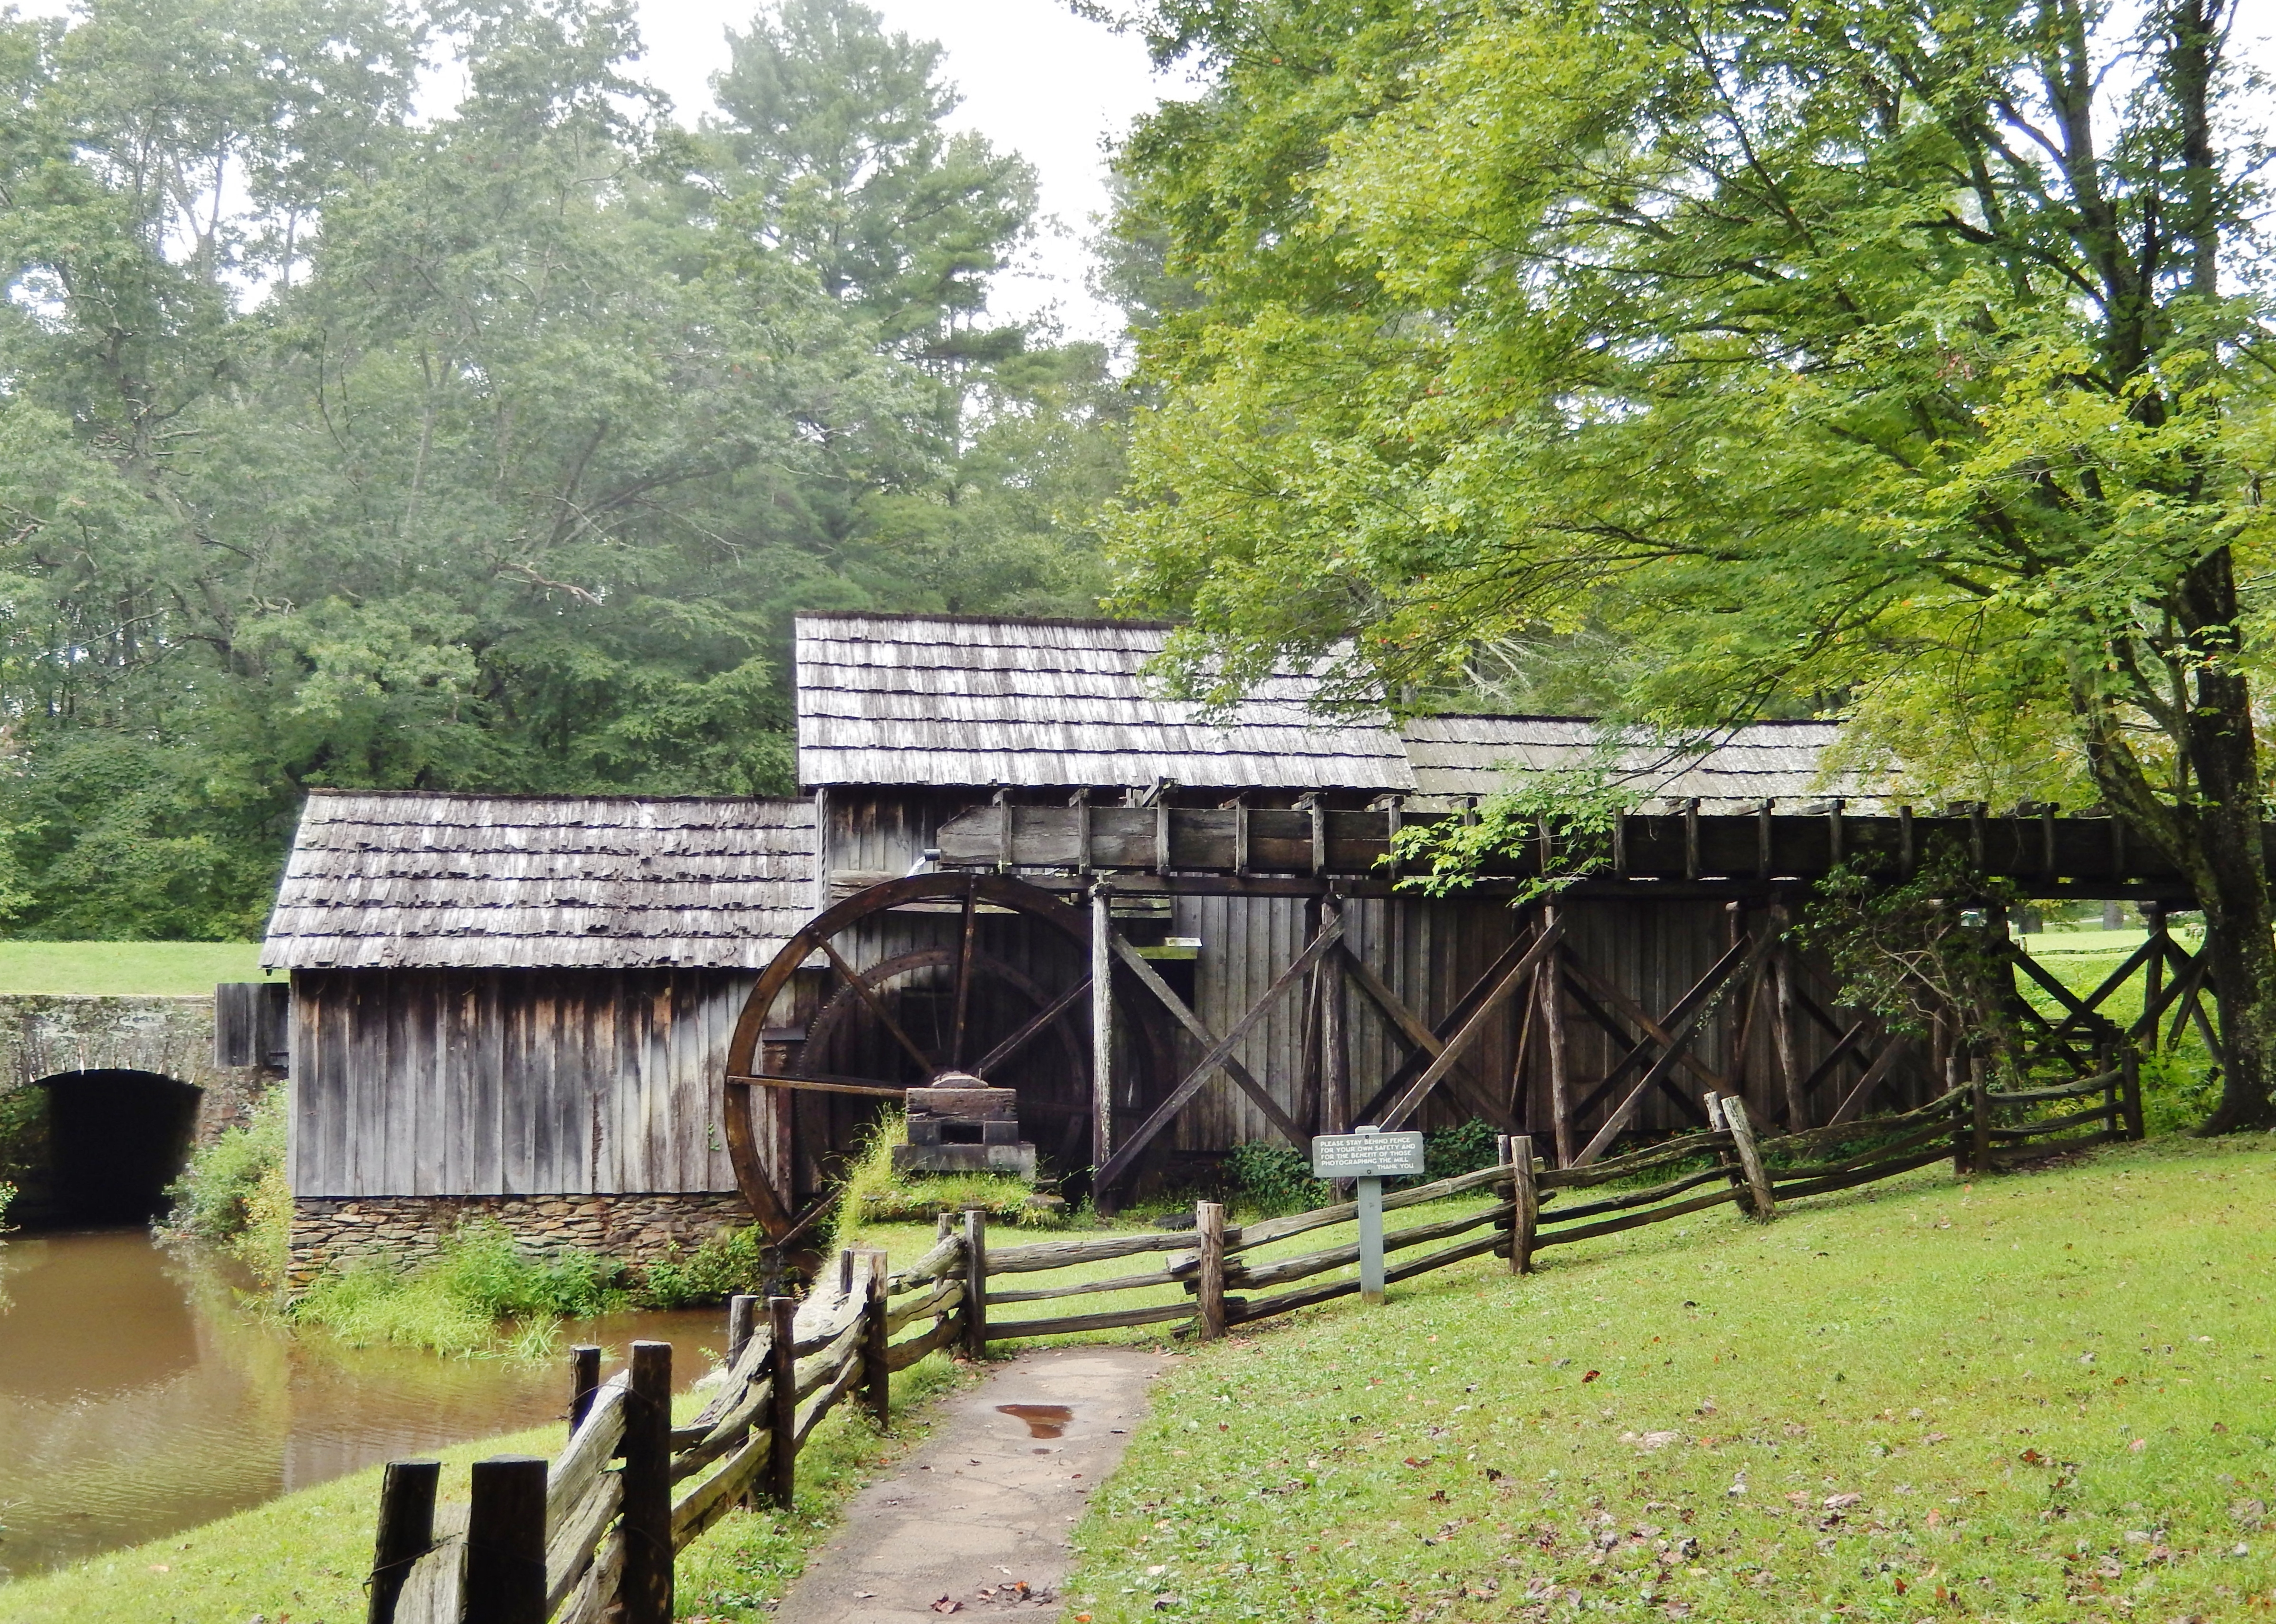 Mabry Mill Waterwheel and Water Supply Flume